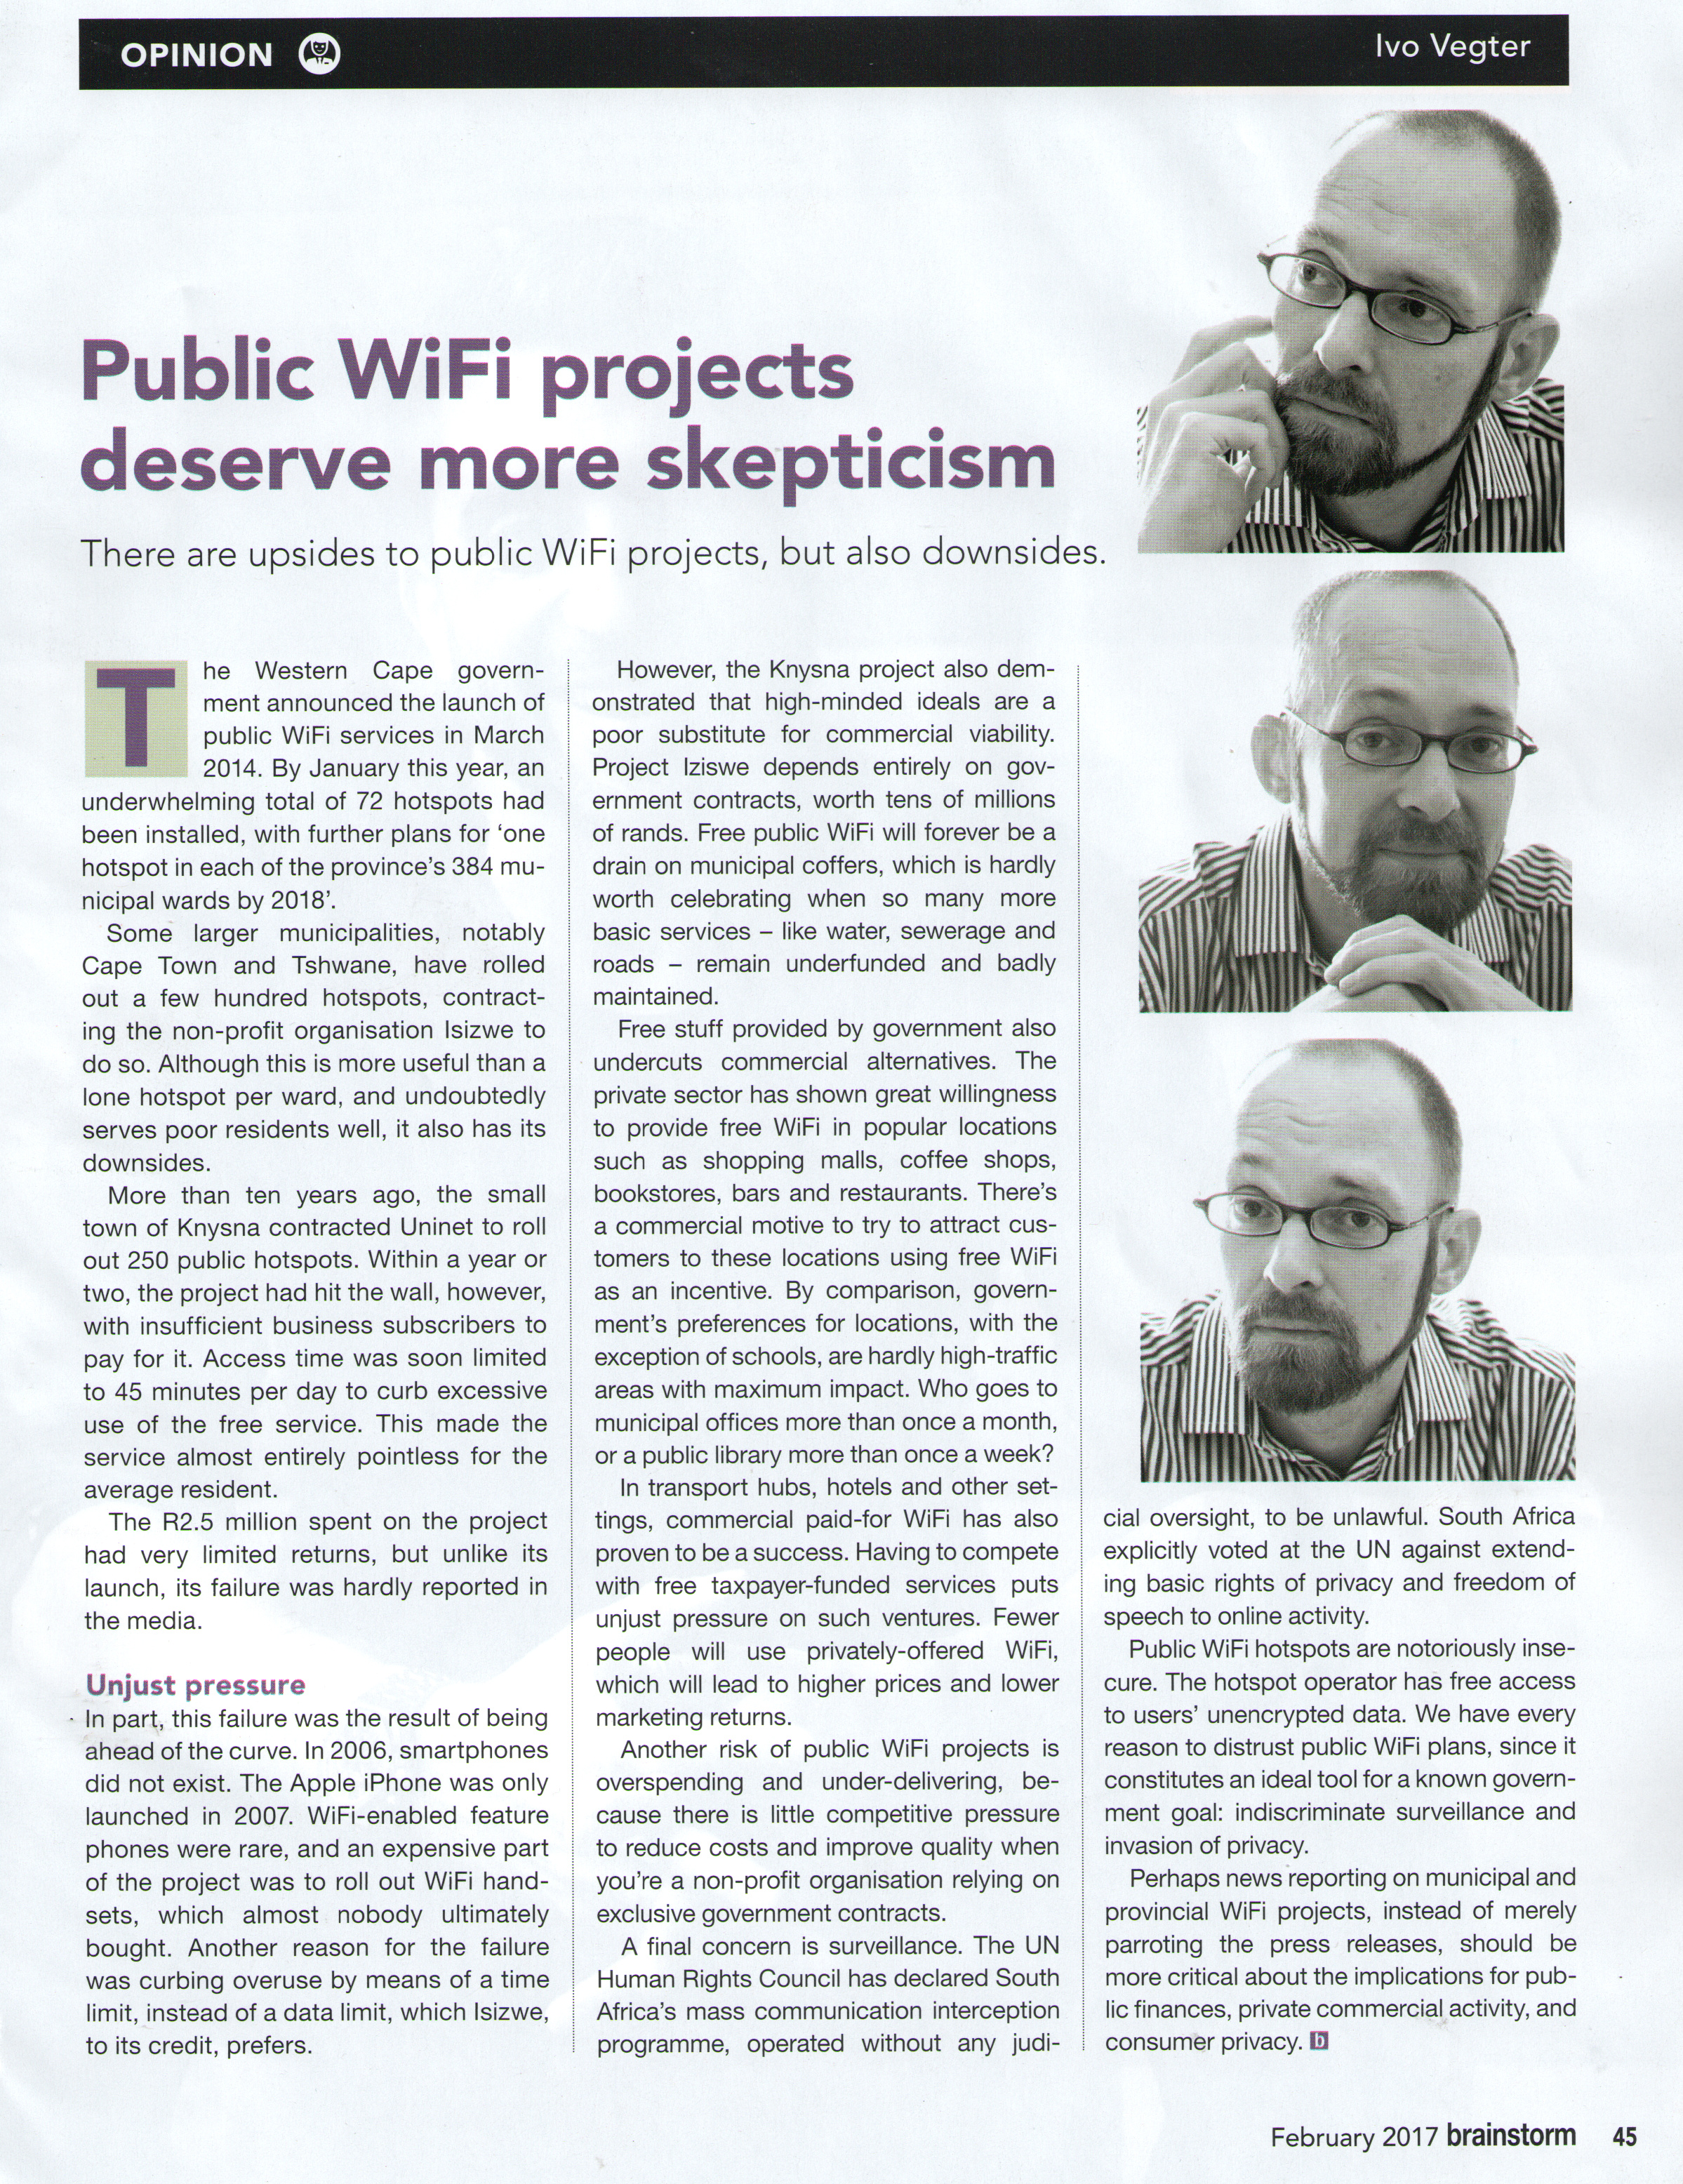 Public WiFi (Brainstorm Feb 2017)